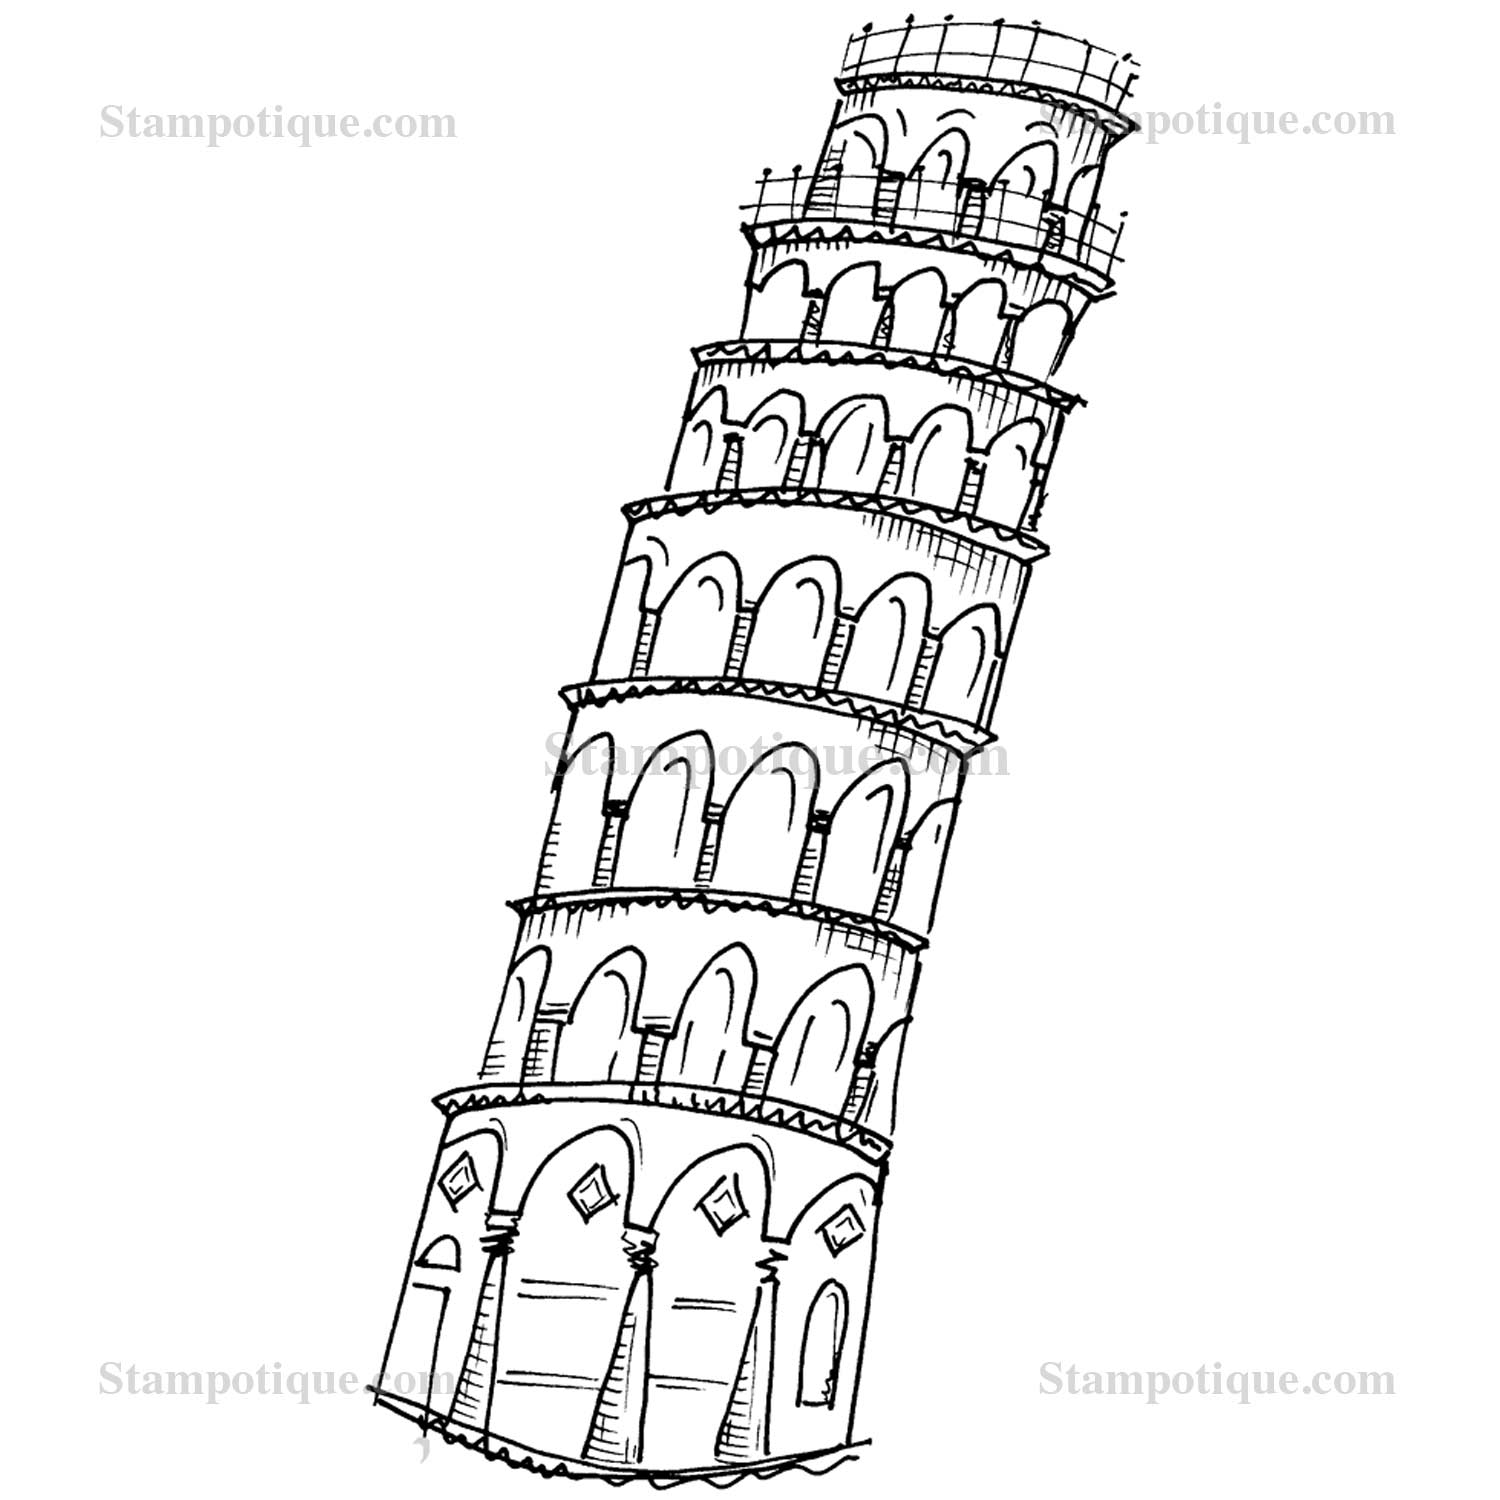 pisa tower drawing leaning tower of pisa drawing free download on clipartmag drawing tower pisa